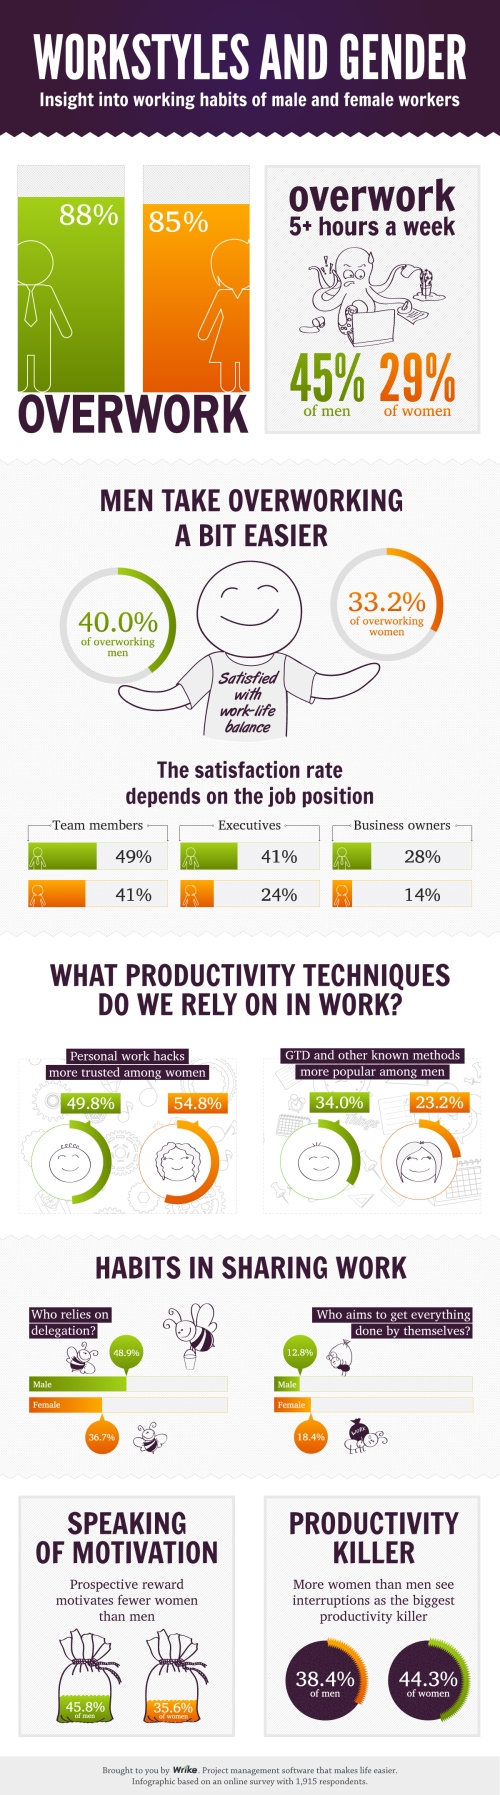 who-works-more-the-secrets-of-male-and-female-working-habits-in-wrikes-new-infographic_5132383d8142e